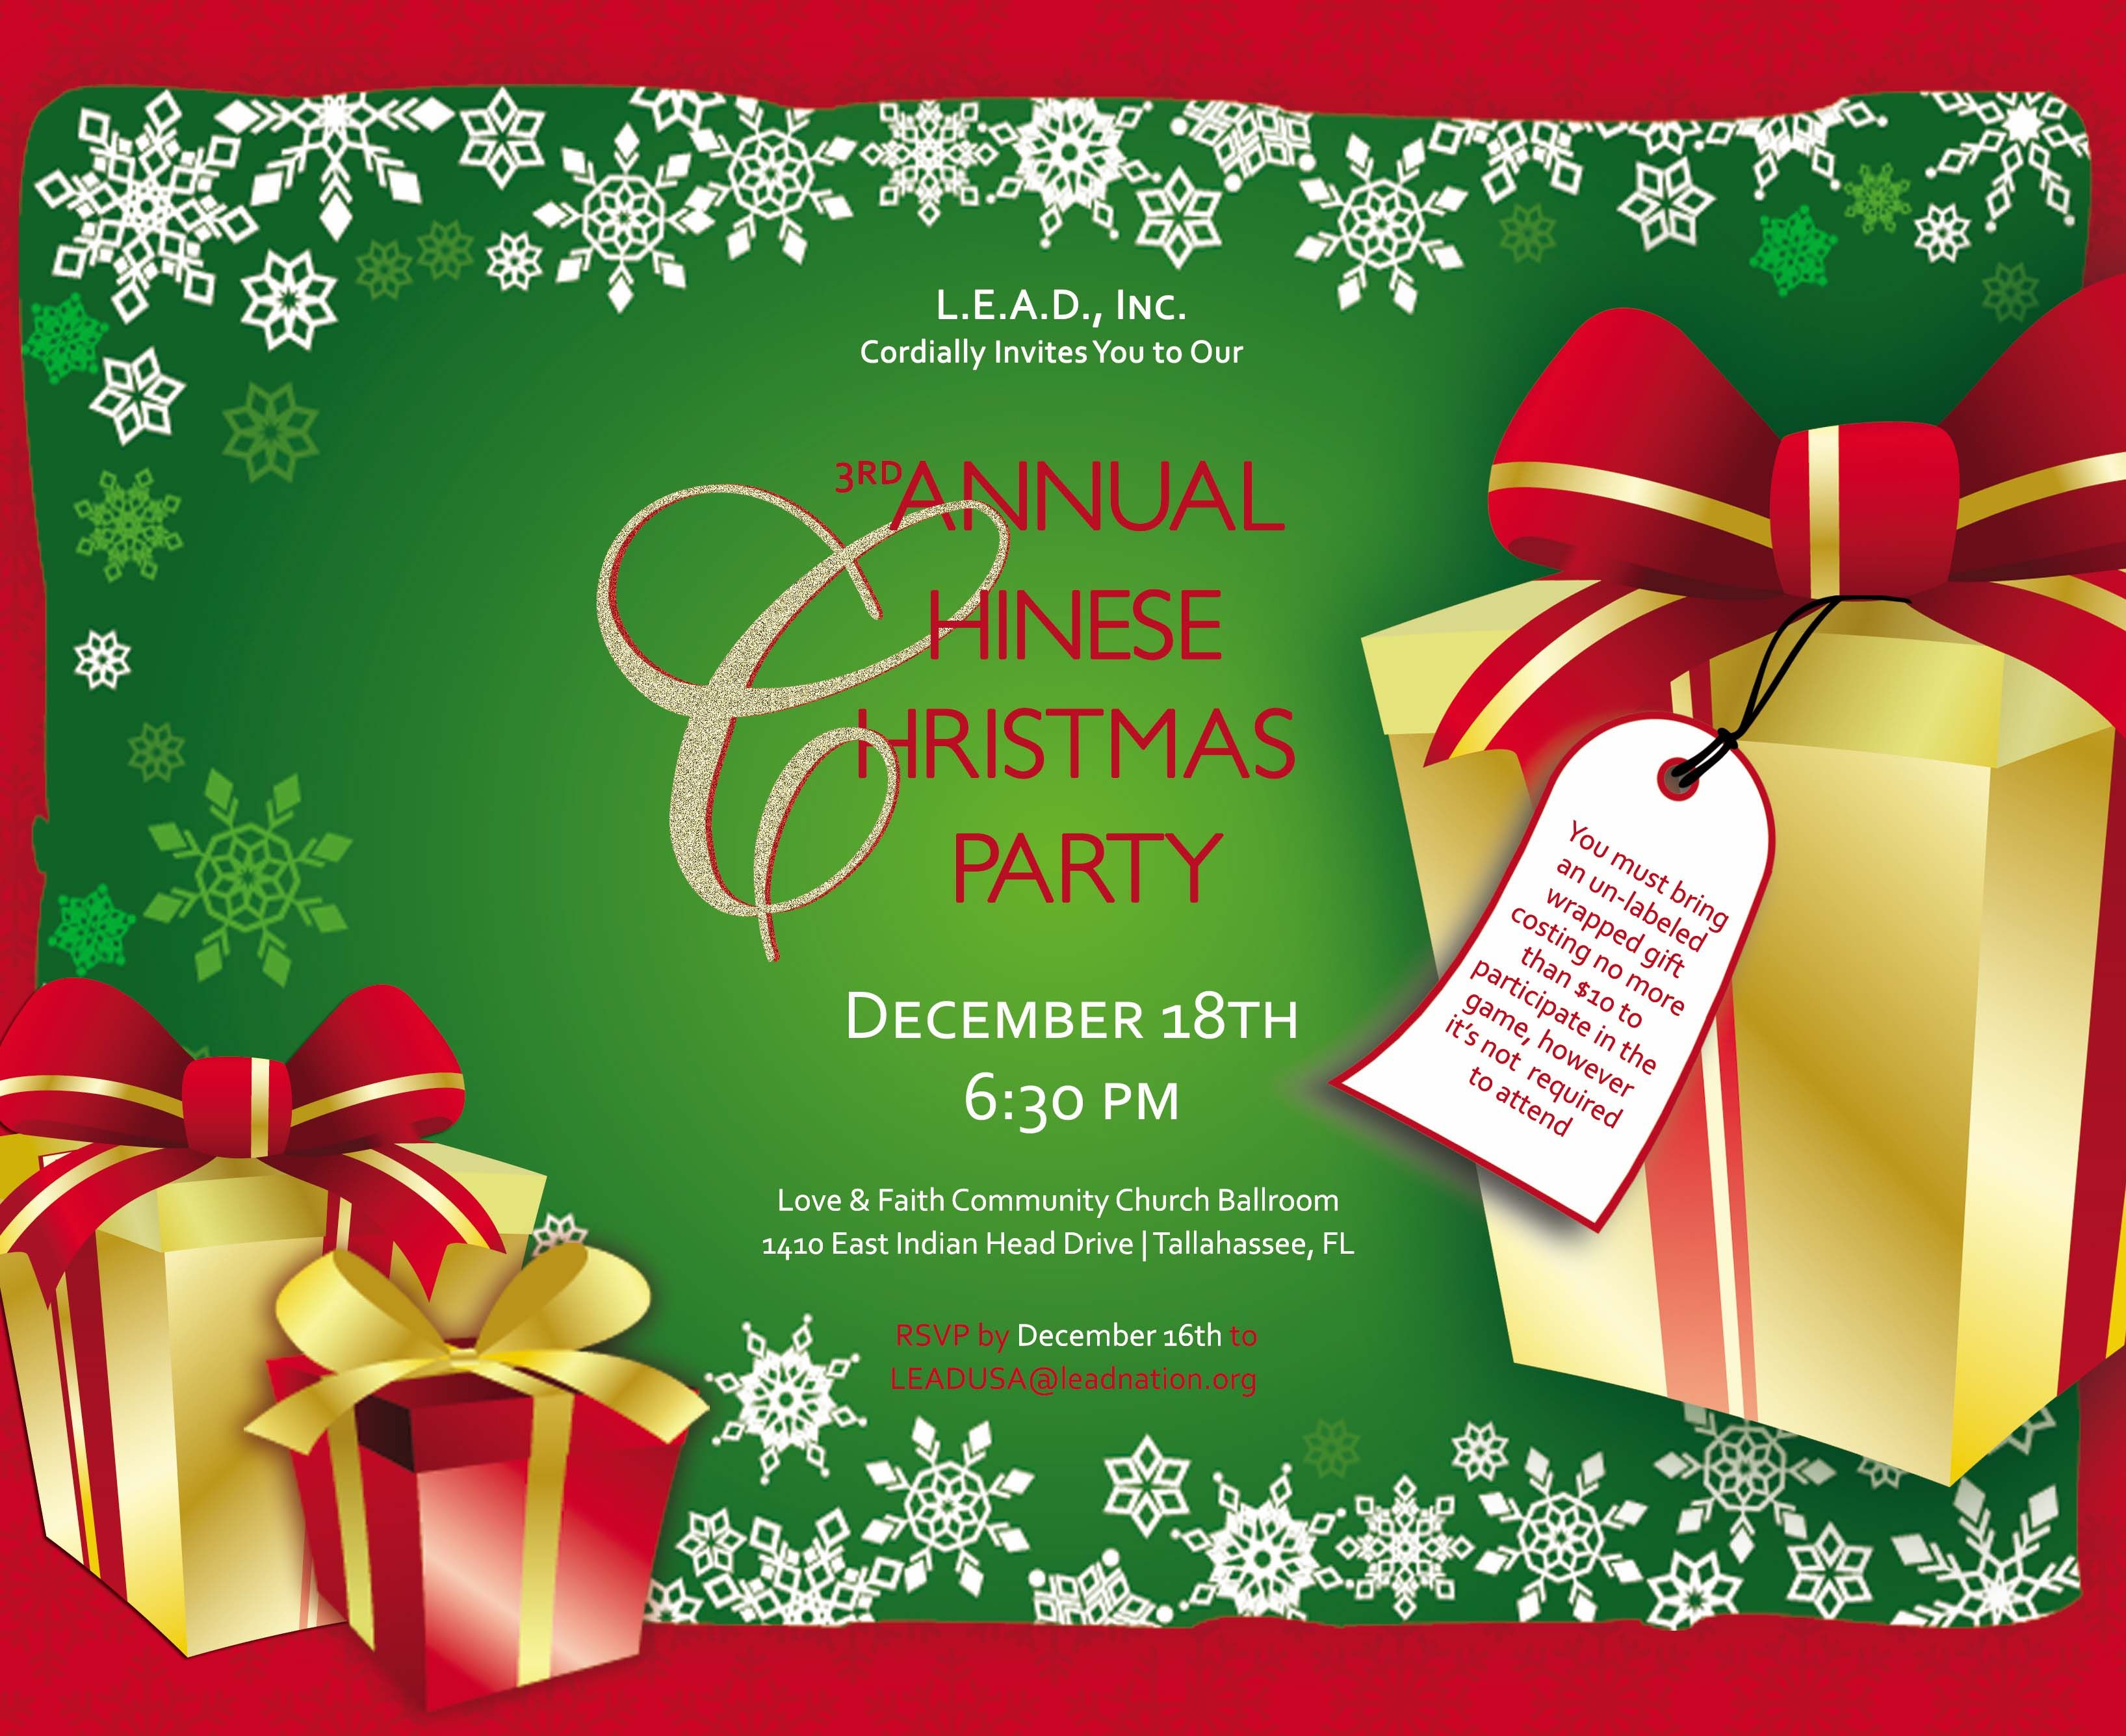 Free Christmas Party Templates Invitations 1000 Idea Christmas Party Invitation Template Christmas Party Invitations Free Free Christmas Invitation Templates